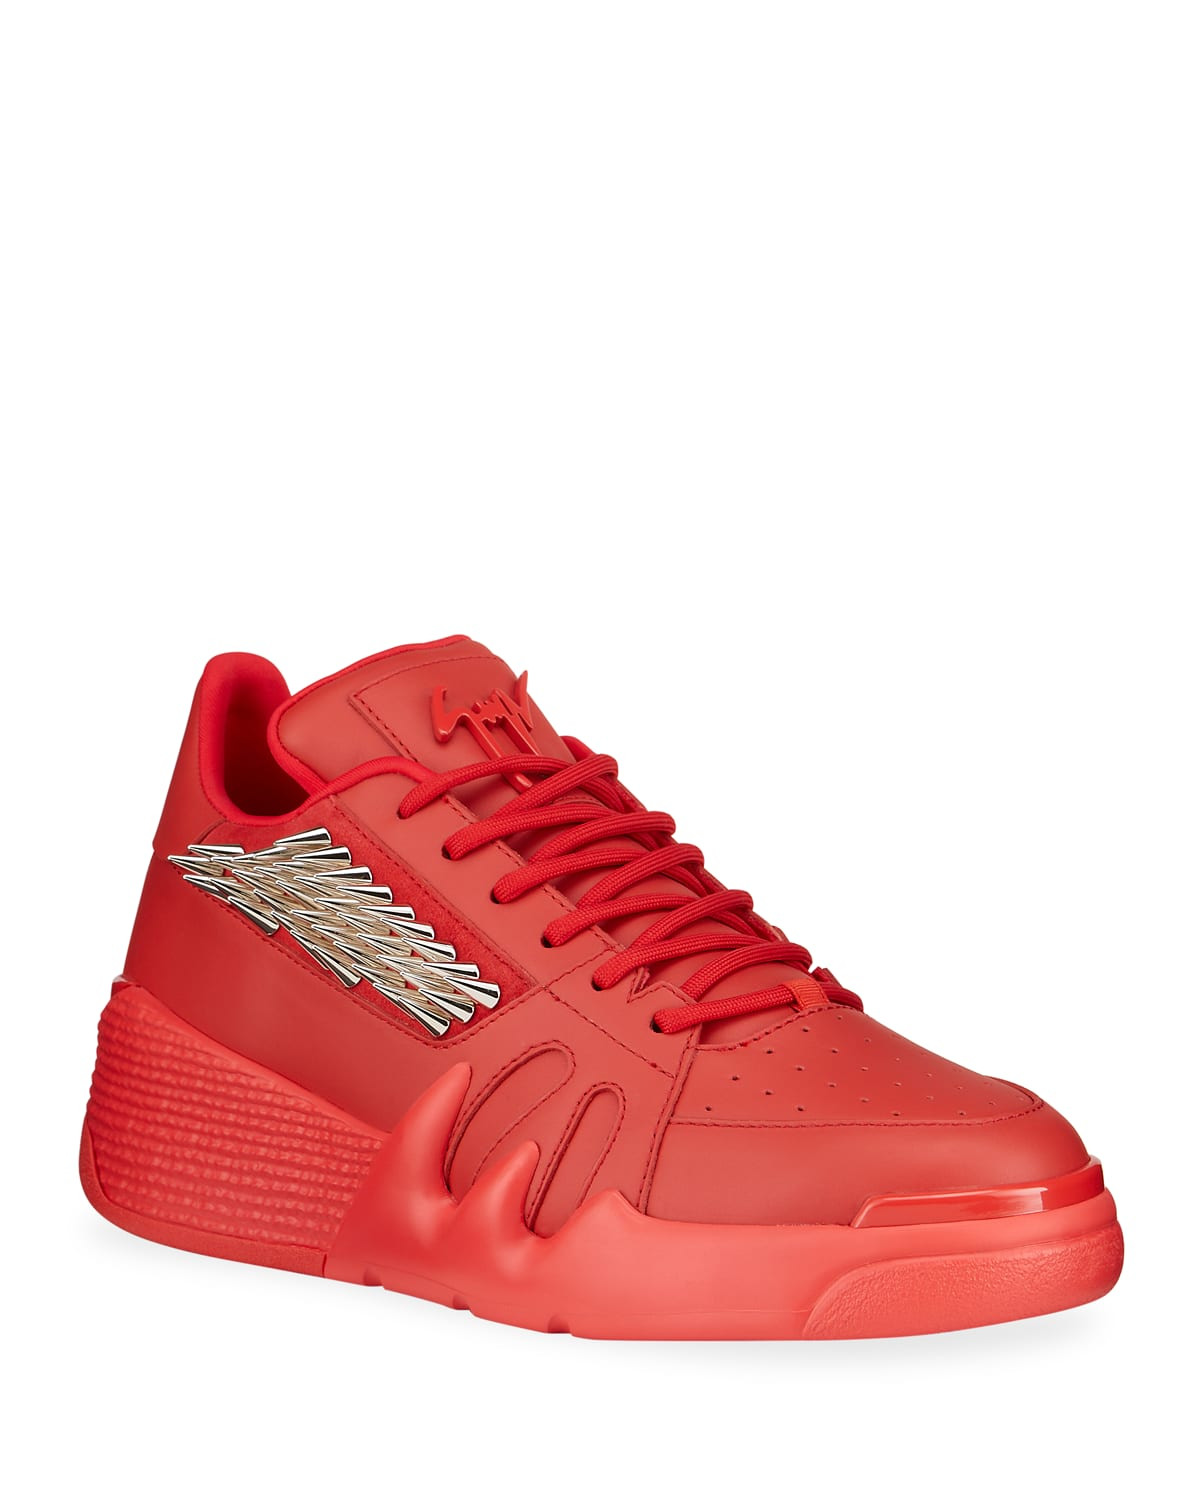 Men's Talon Spiked Leather Chunky Sneakers